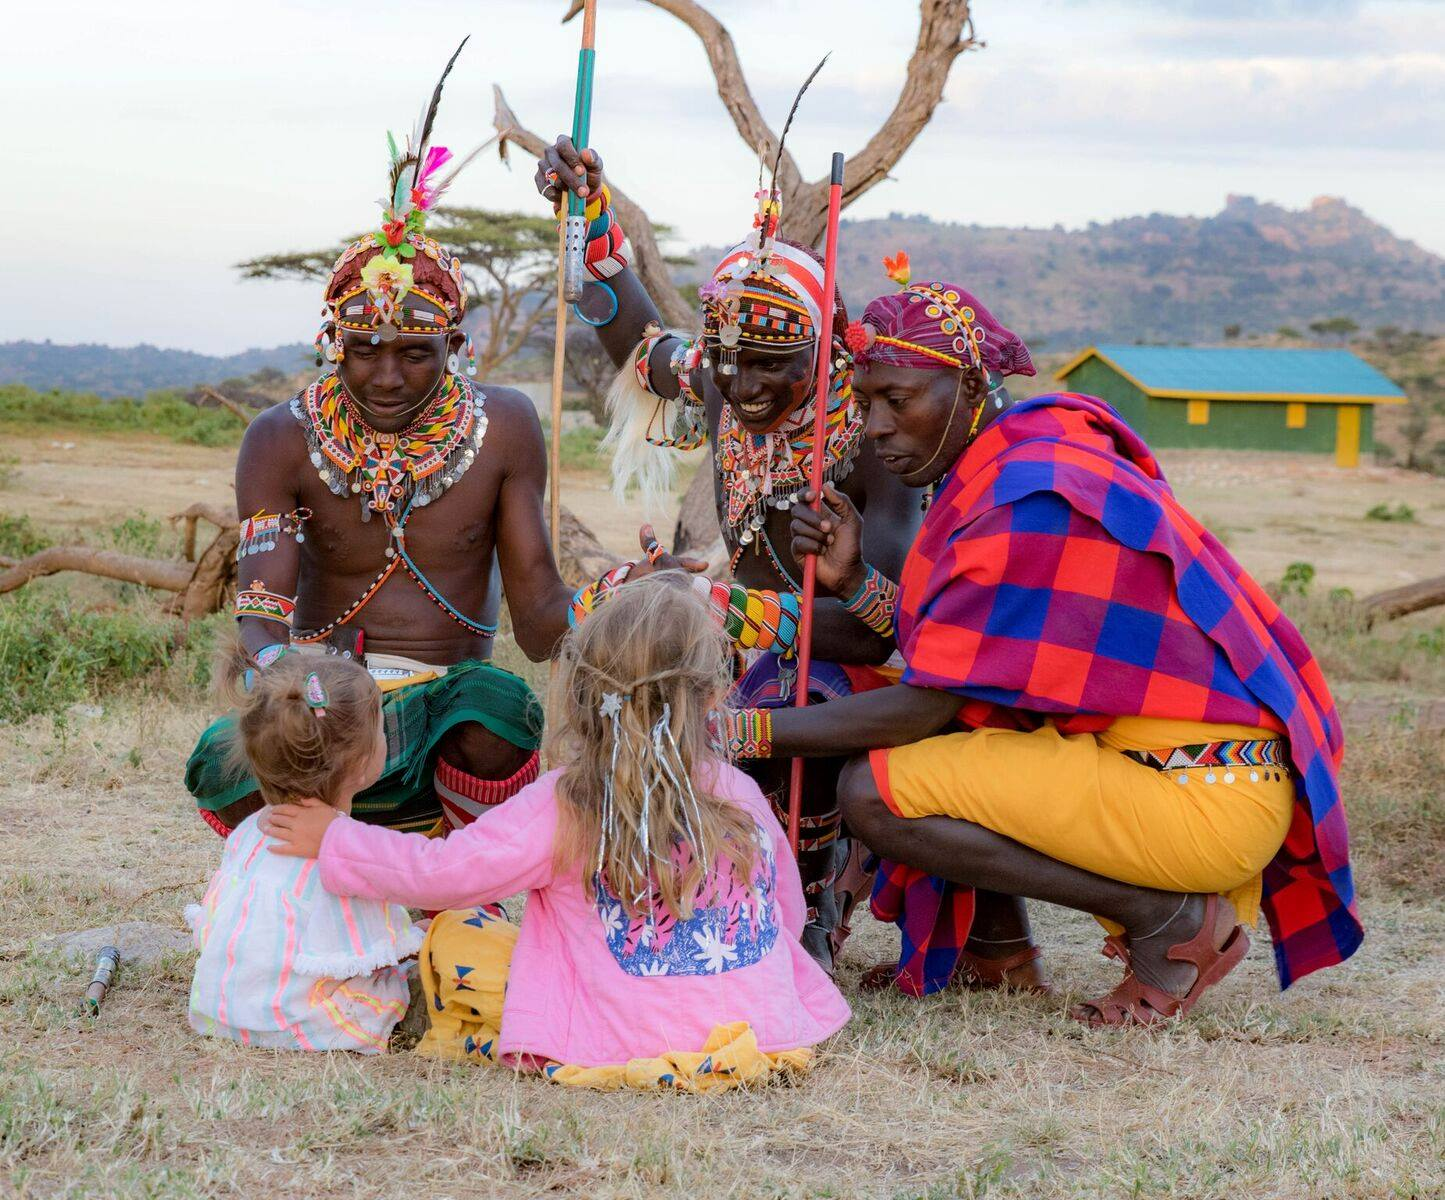 One British couple offers travellers to Kenya the chance to combine their luxury safari with meaningful contributions to local communities.